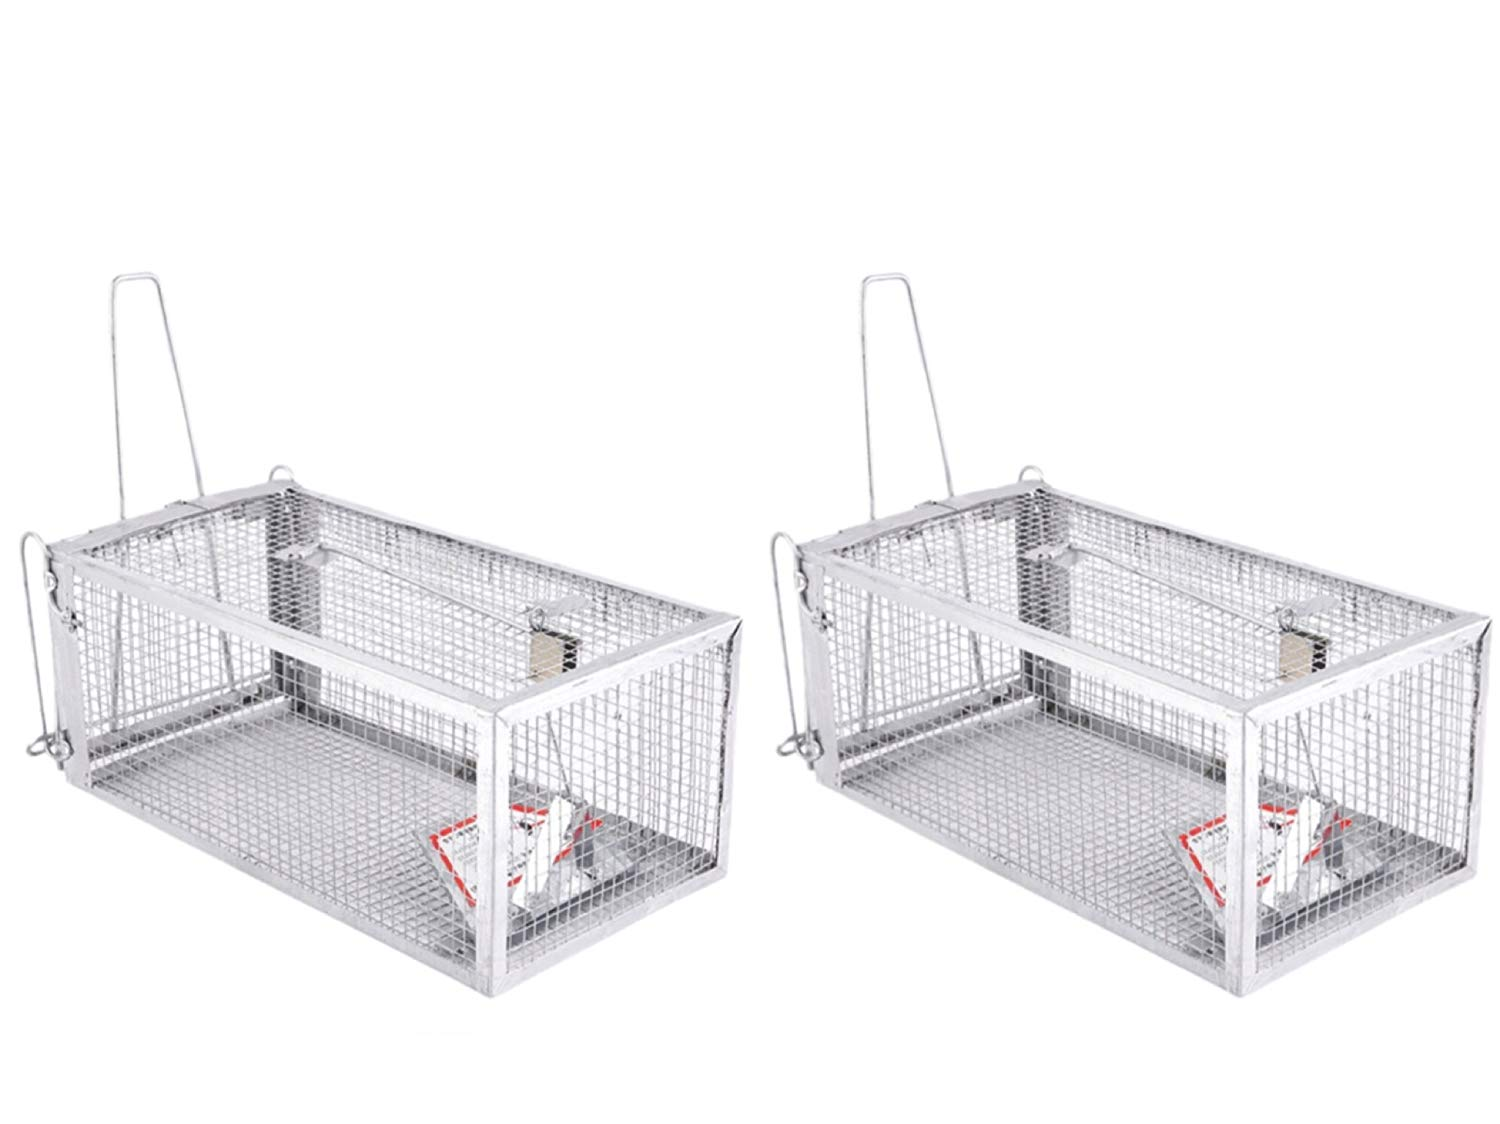 2 pack Live Animal Humane Trap Catch and Release Rats Mouse Mice Rodents Squirrels and Similar Sized Pests 2 Pack